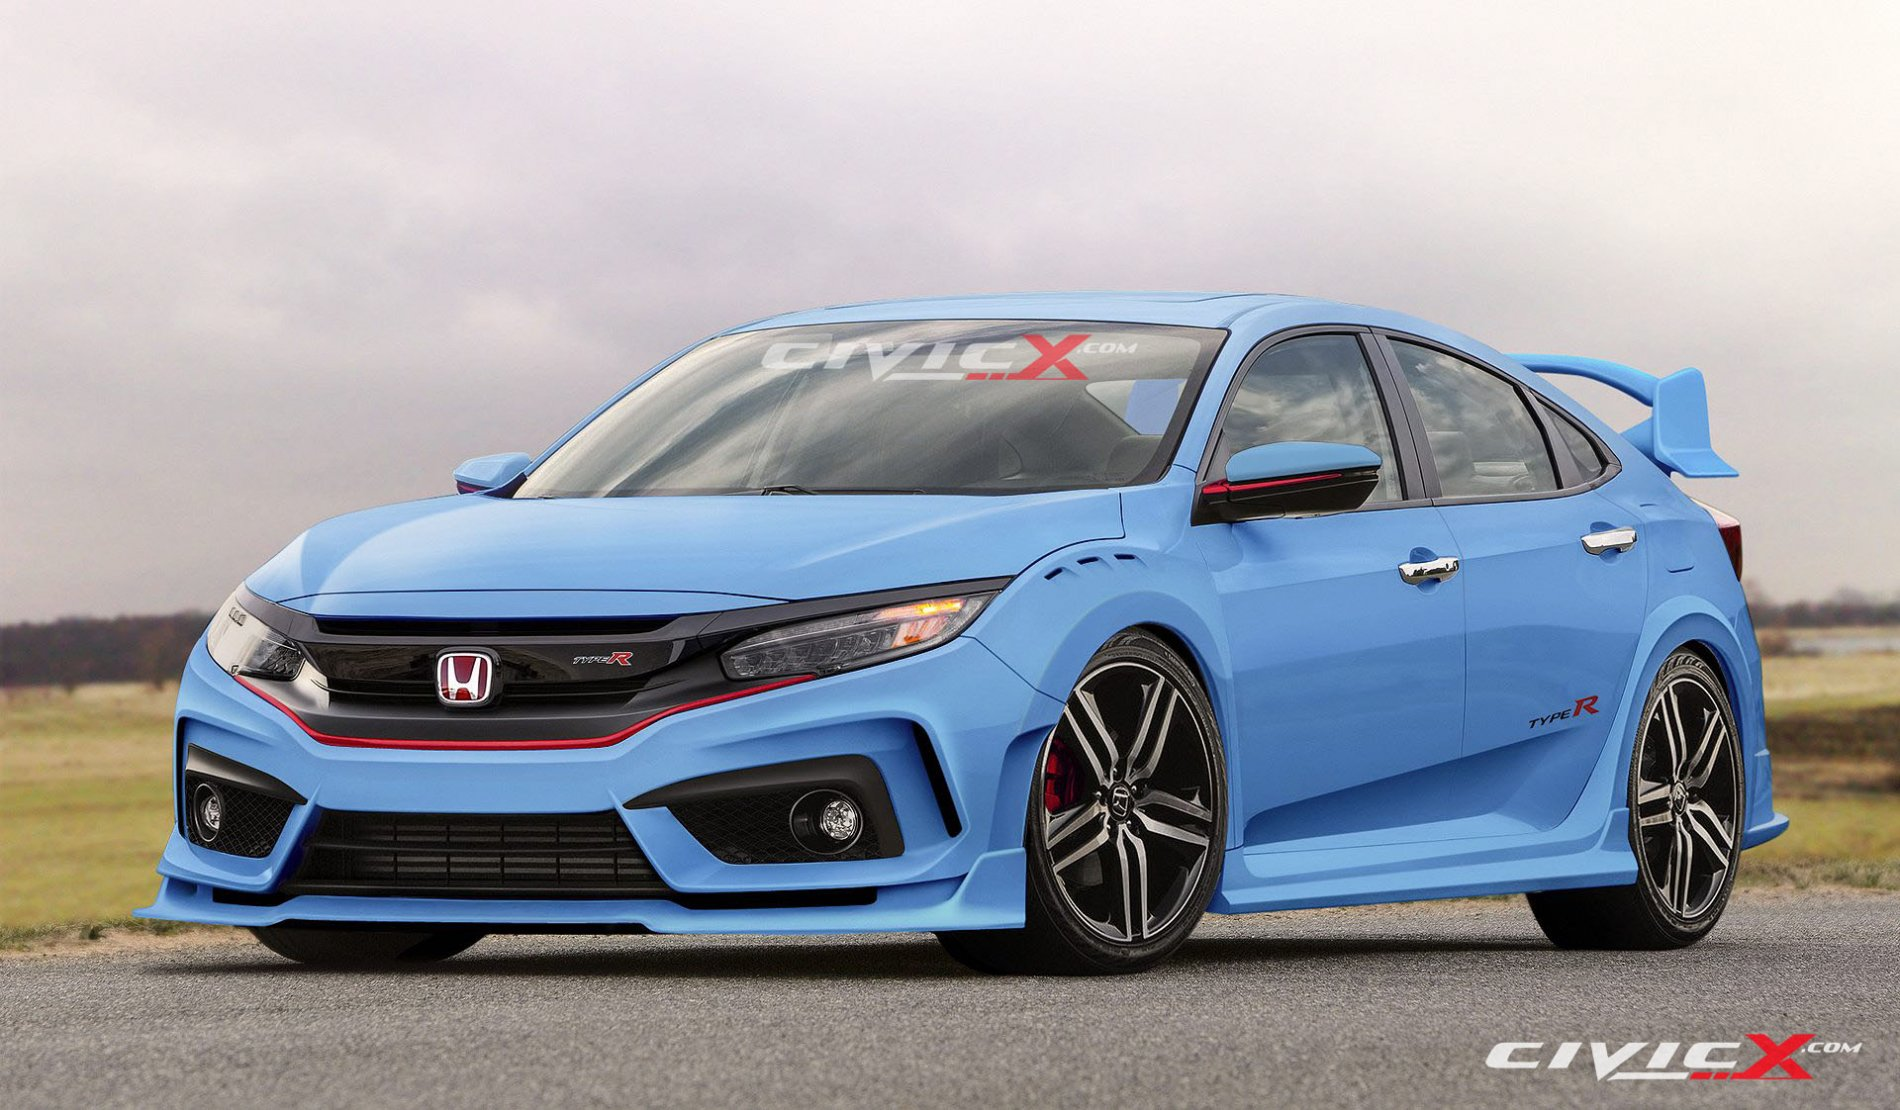 2017 honda civic type r looks ready to summon satan in latest renderings has muffler bypass. Black Bedroom Furniture Sets. Home Design Ideas